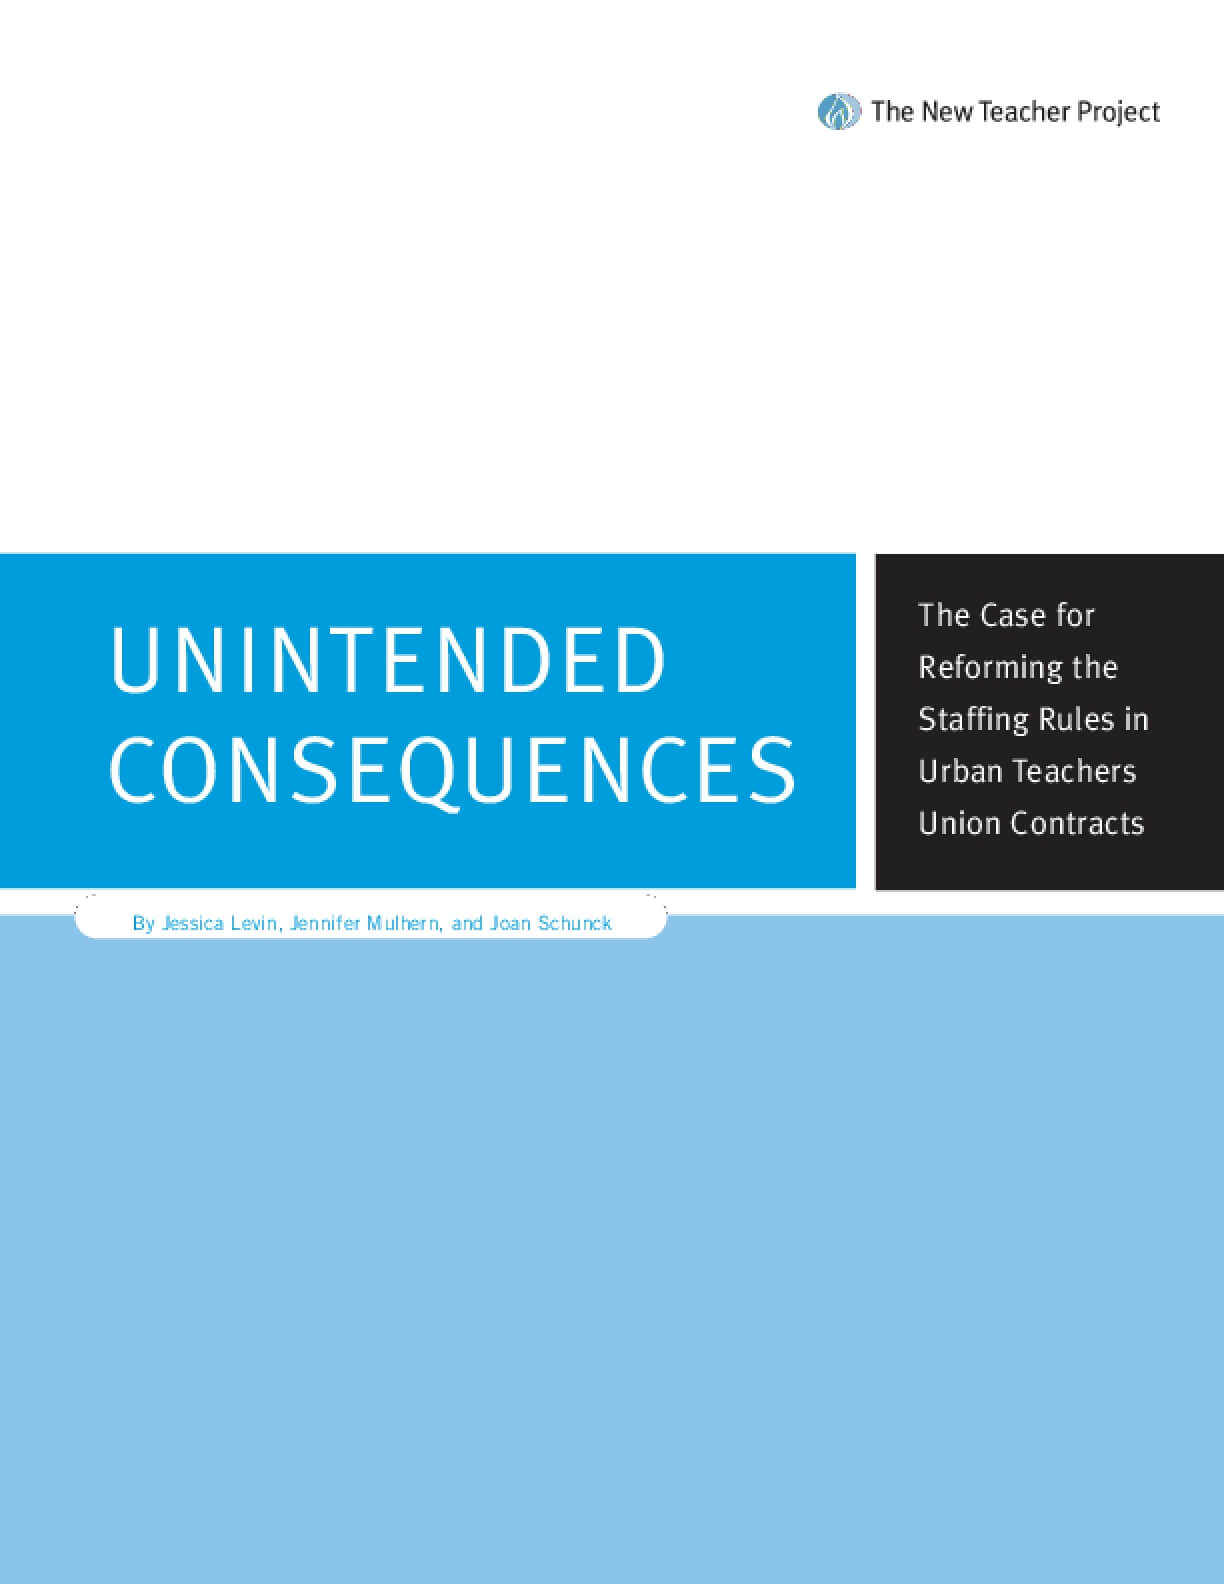 Unintended Consequences: The Case for Reforming the Staffing Rules in Urban Teachers Union Contracts